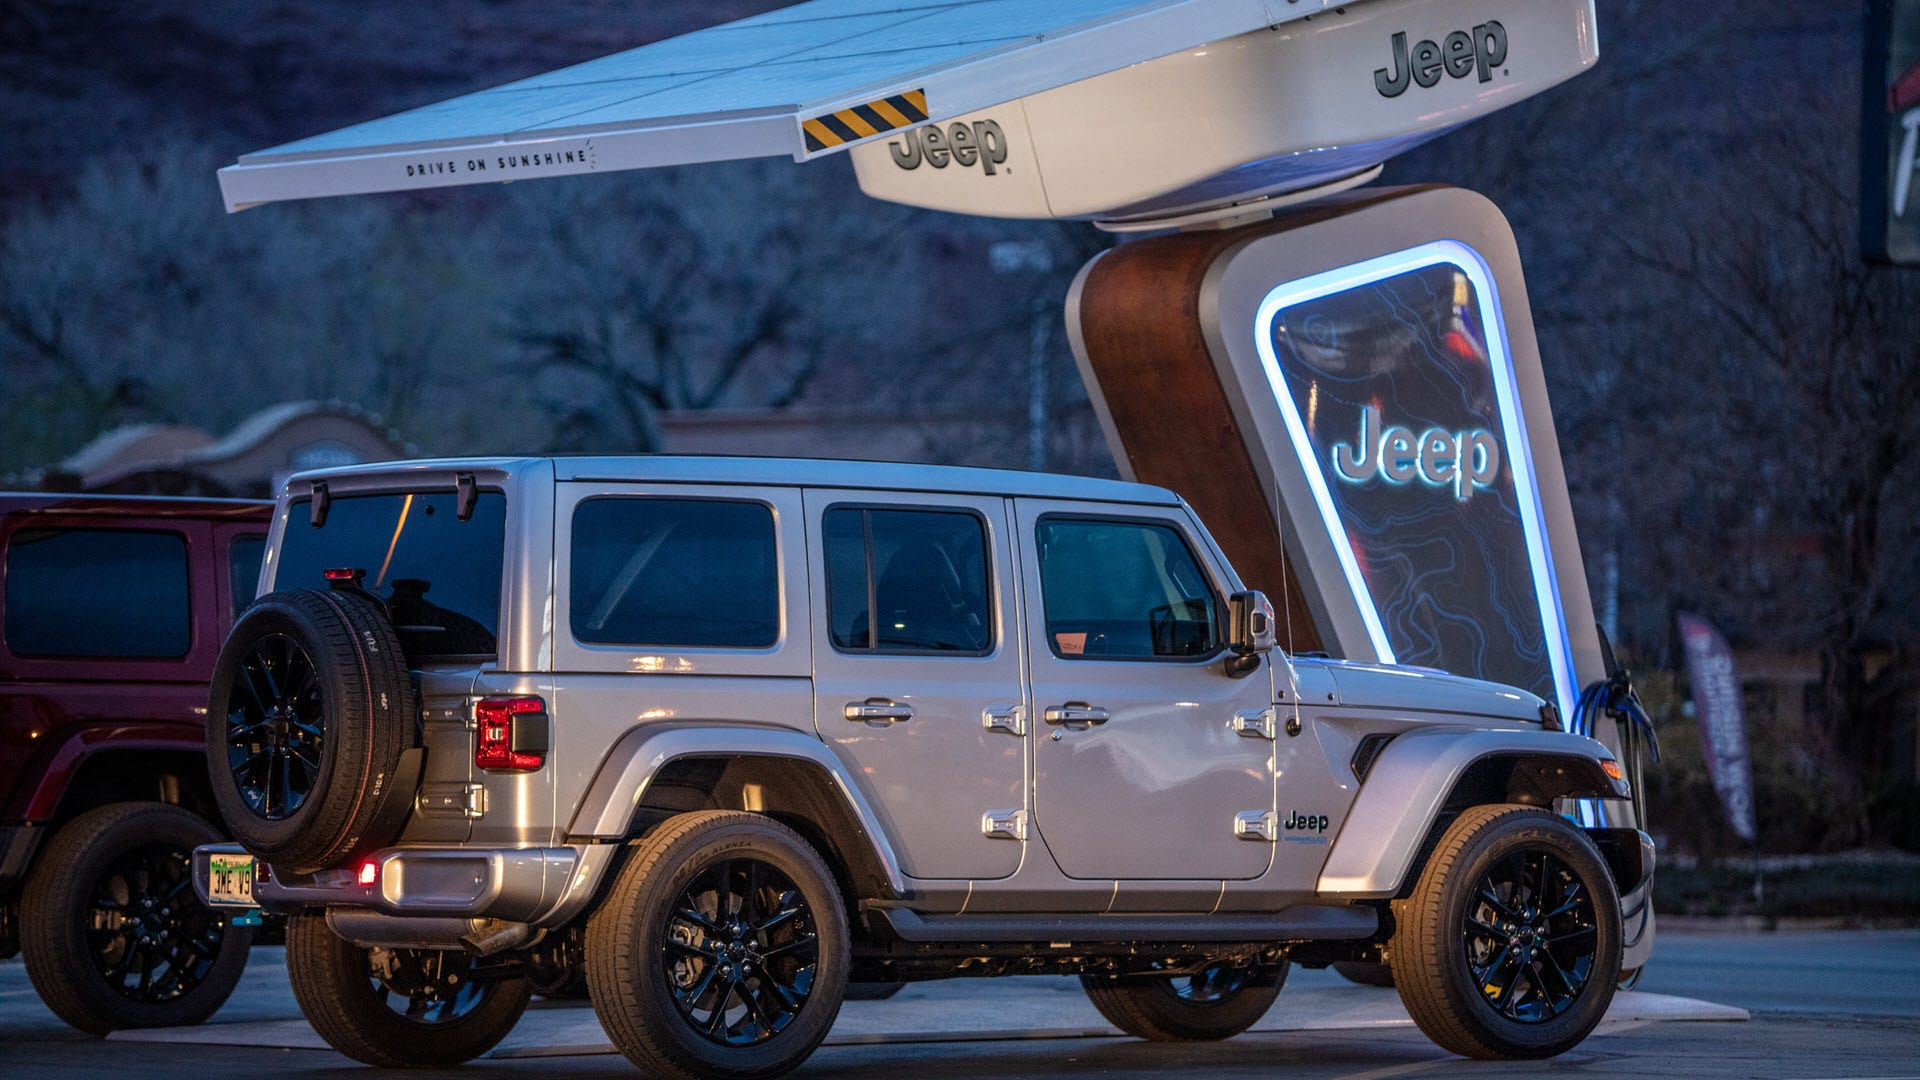 A Jeep beneath a solar roof with Jeep logos.